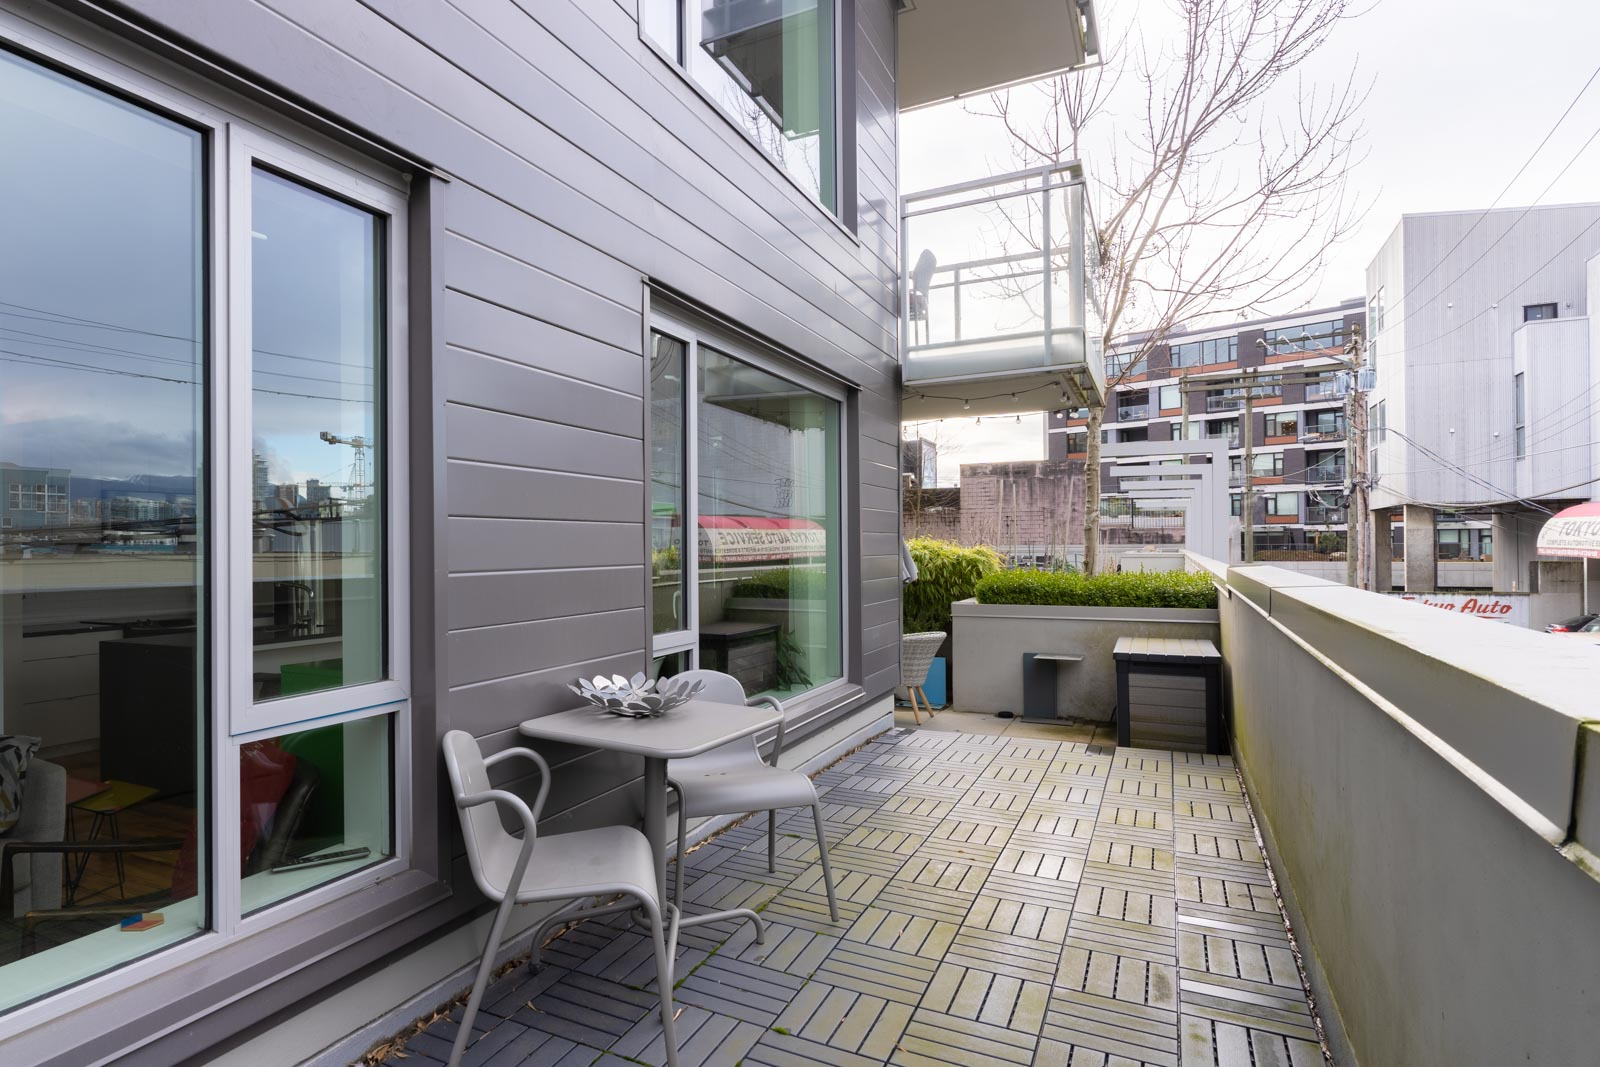 Balcony with large spacious space for entertaining in rental condo in Mount pleasant neighbourhood Vancouver